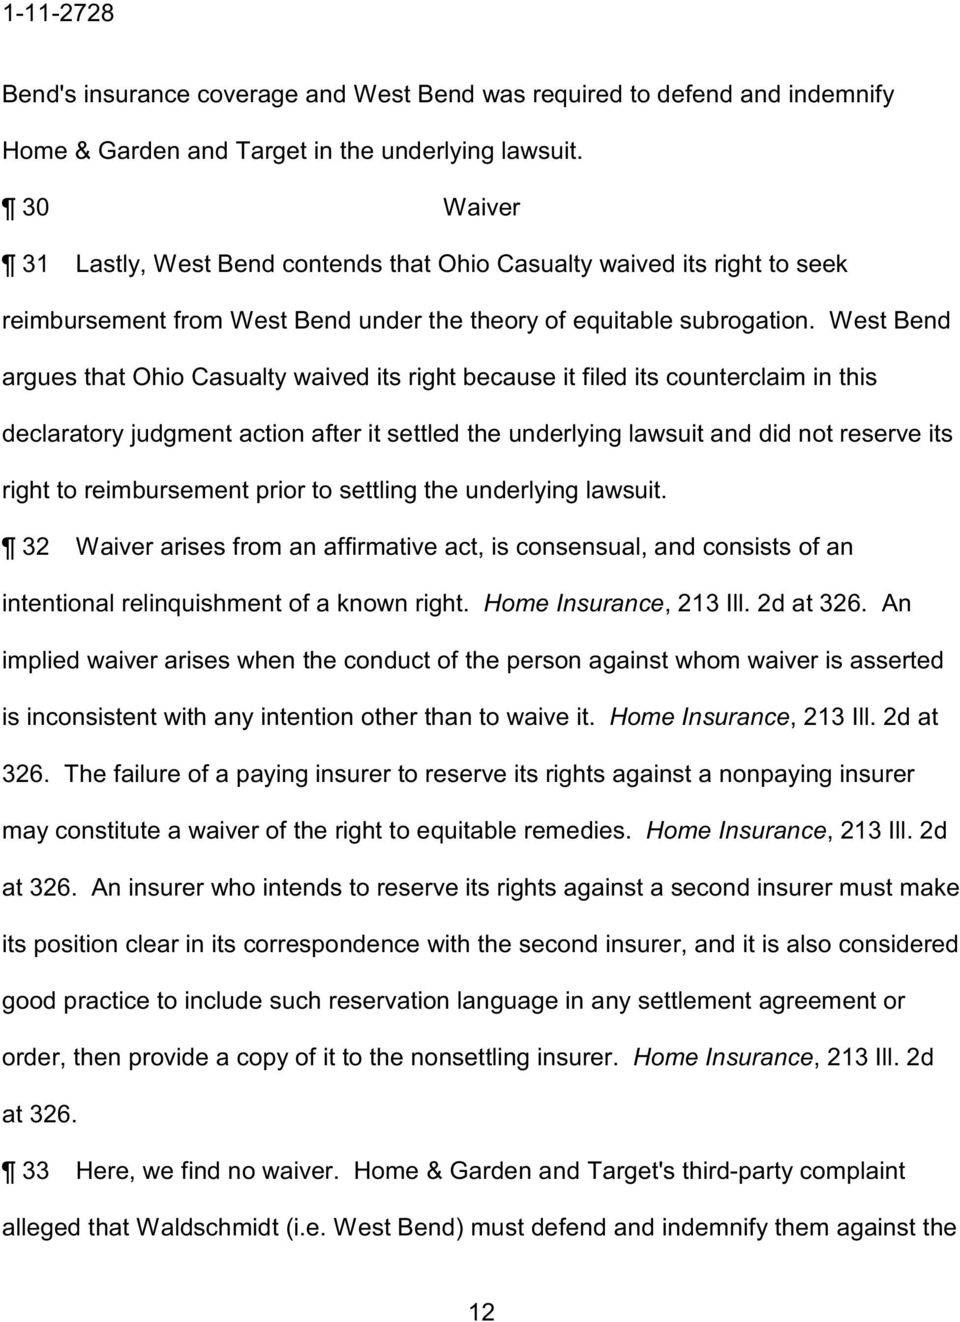 West Bend argues that Ohio Casualty waived its right because it filed its counterclaim in this declaratory judgment action after it settled the underlying lawsuit and did not reserve its right to